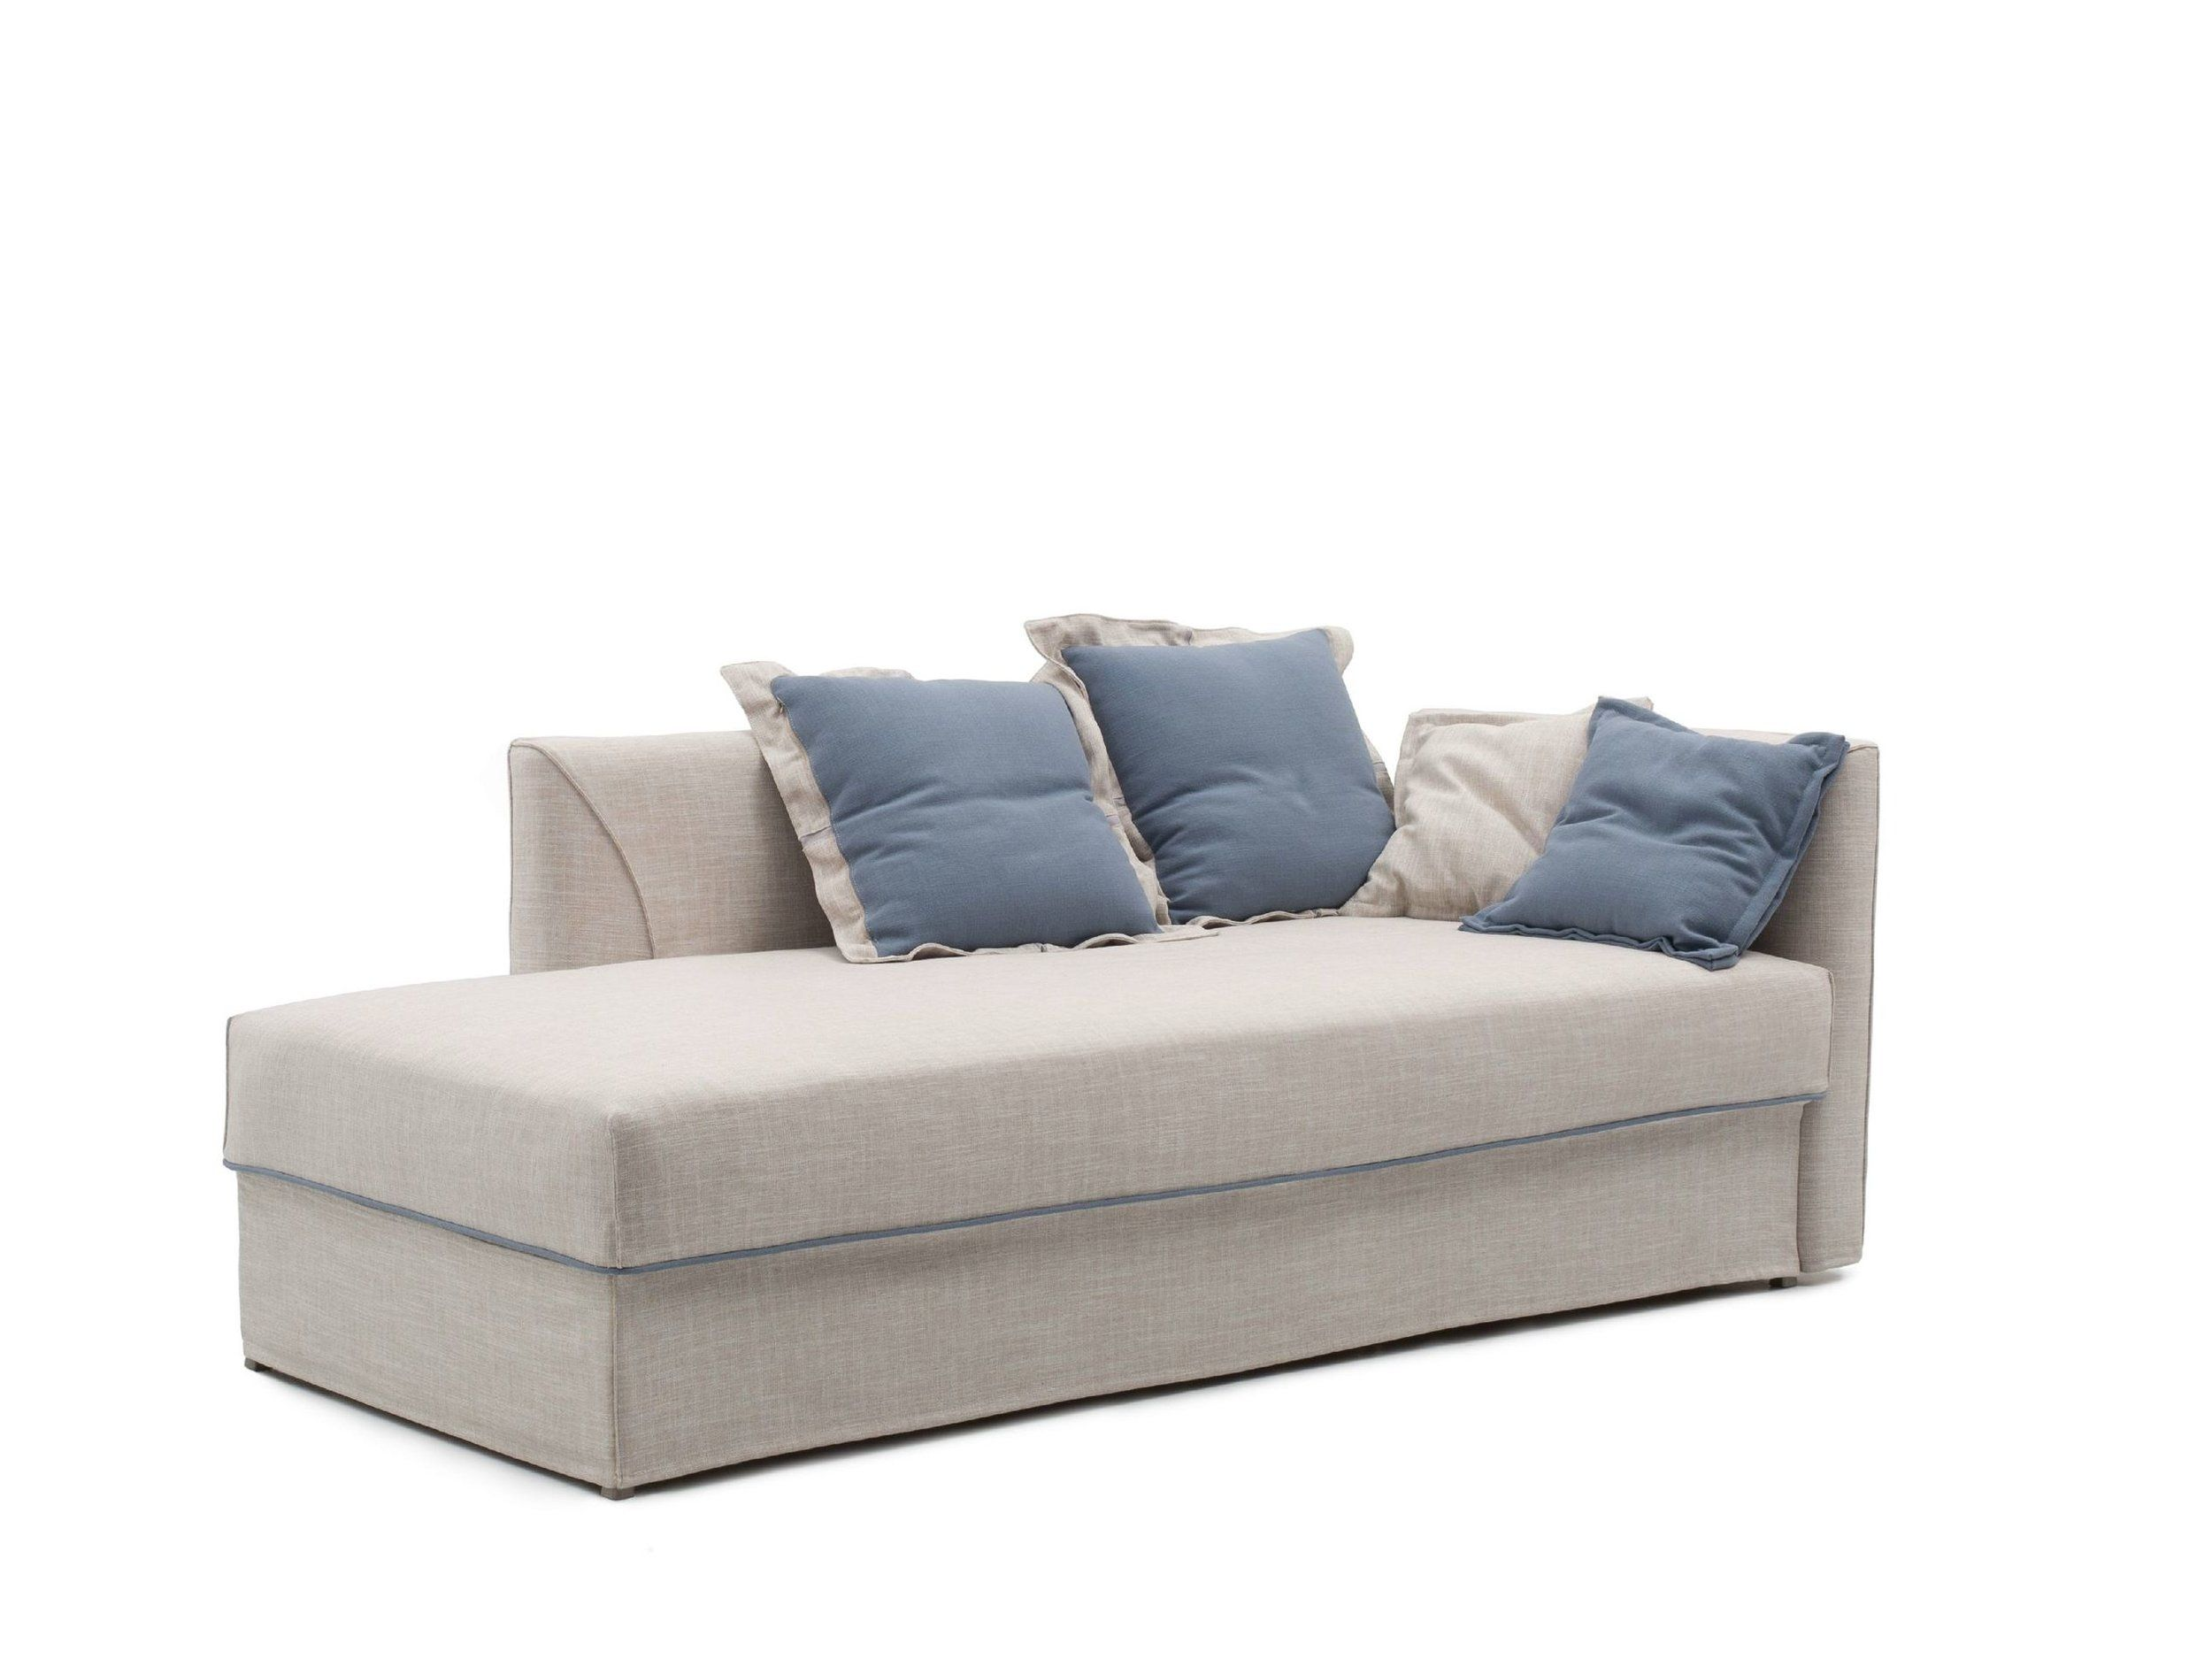 Quality Sofa Beds | Bedding Queen Size Sofa Bed Top Quality Sofa ...